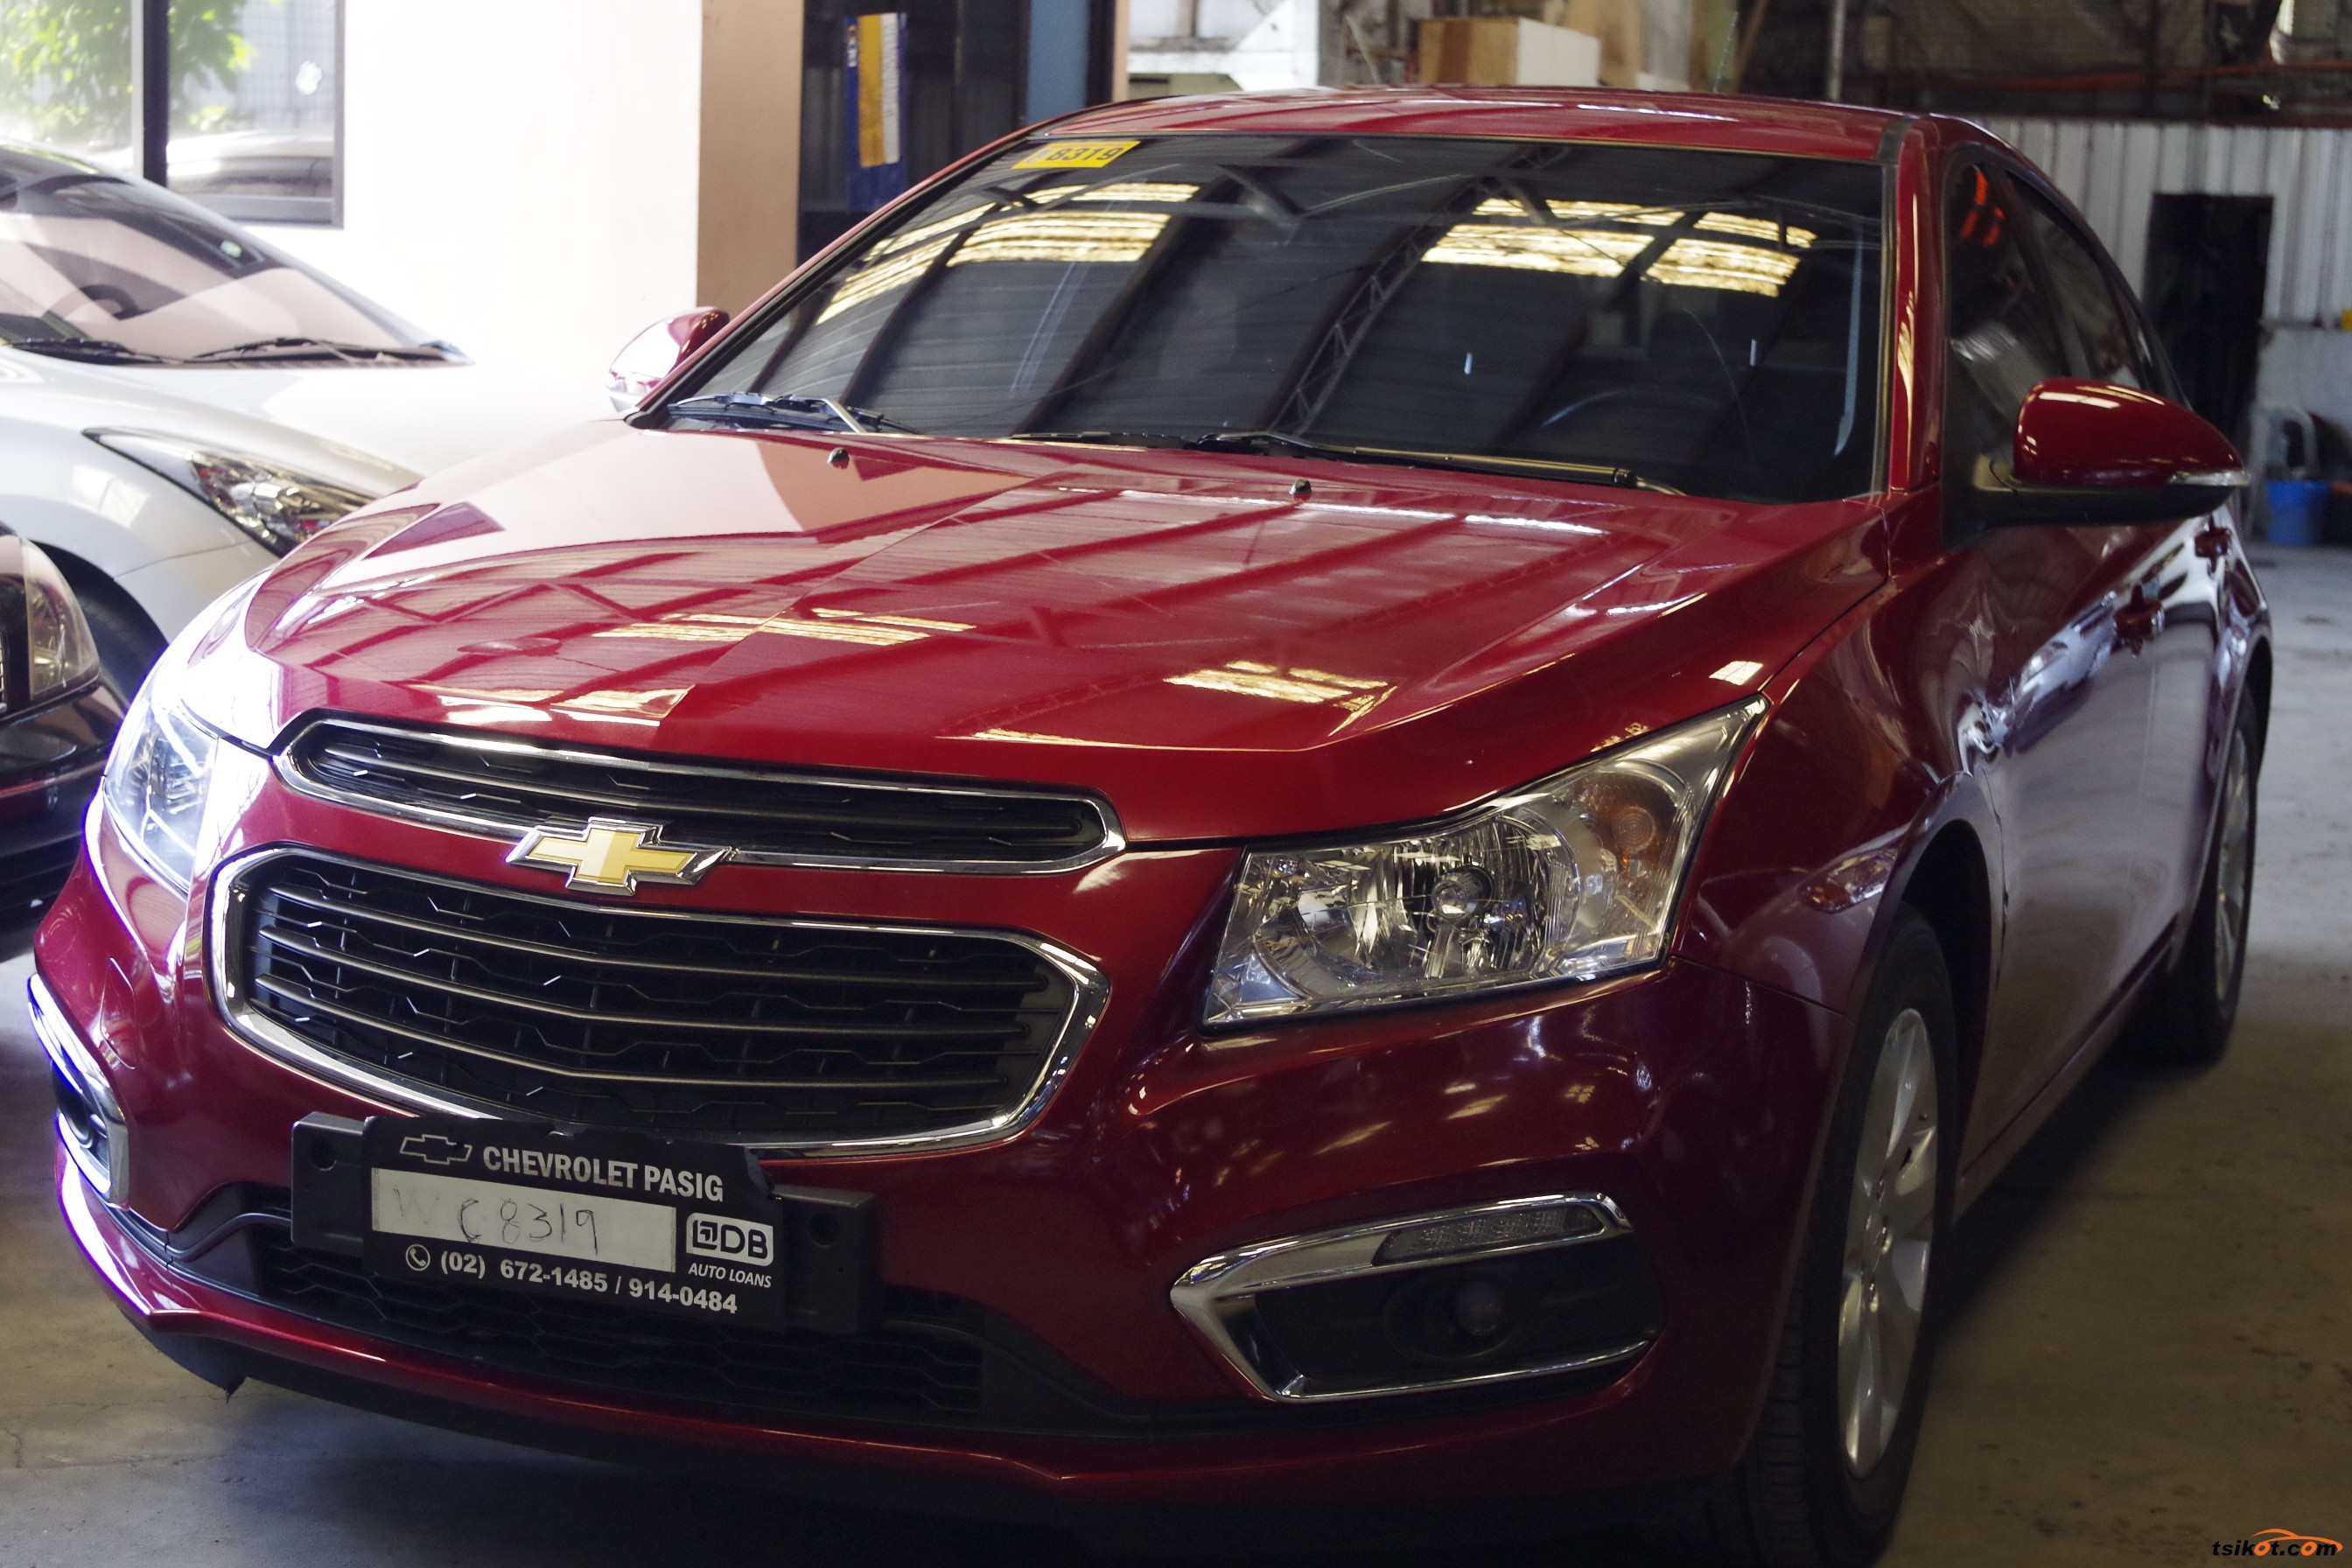 chevrolet cruze 2015 car for sale metro manila. Black Bedroom Furniture Sets. Home Design Ideas